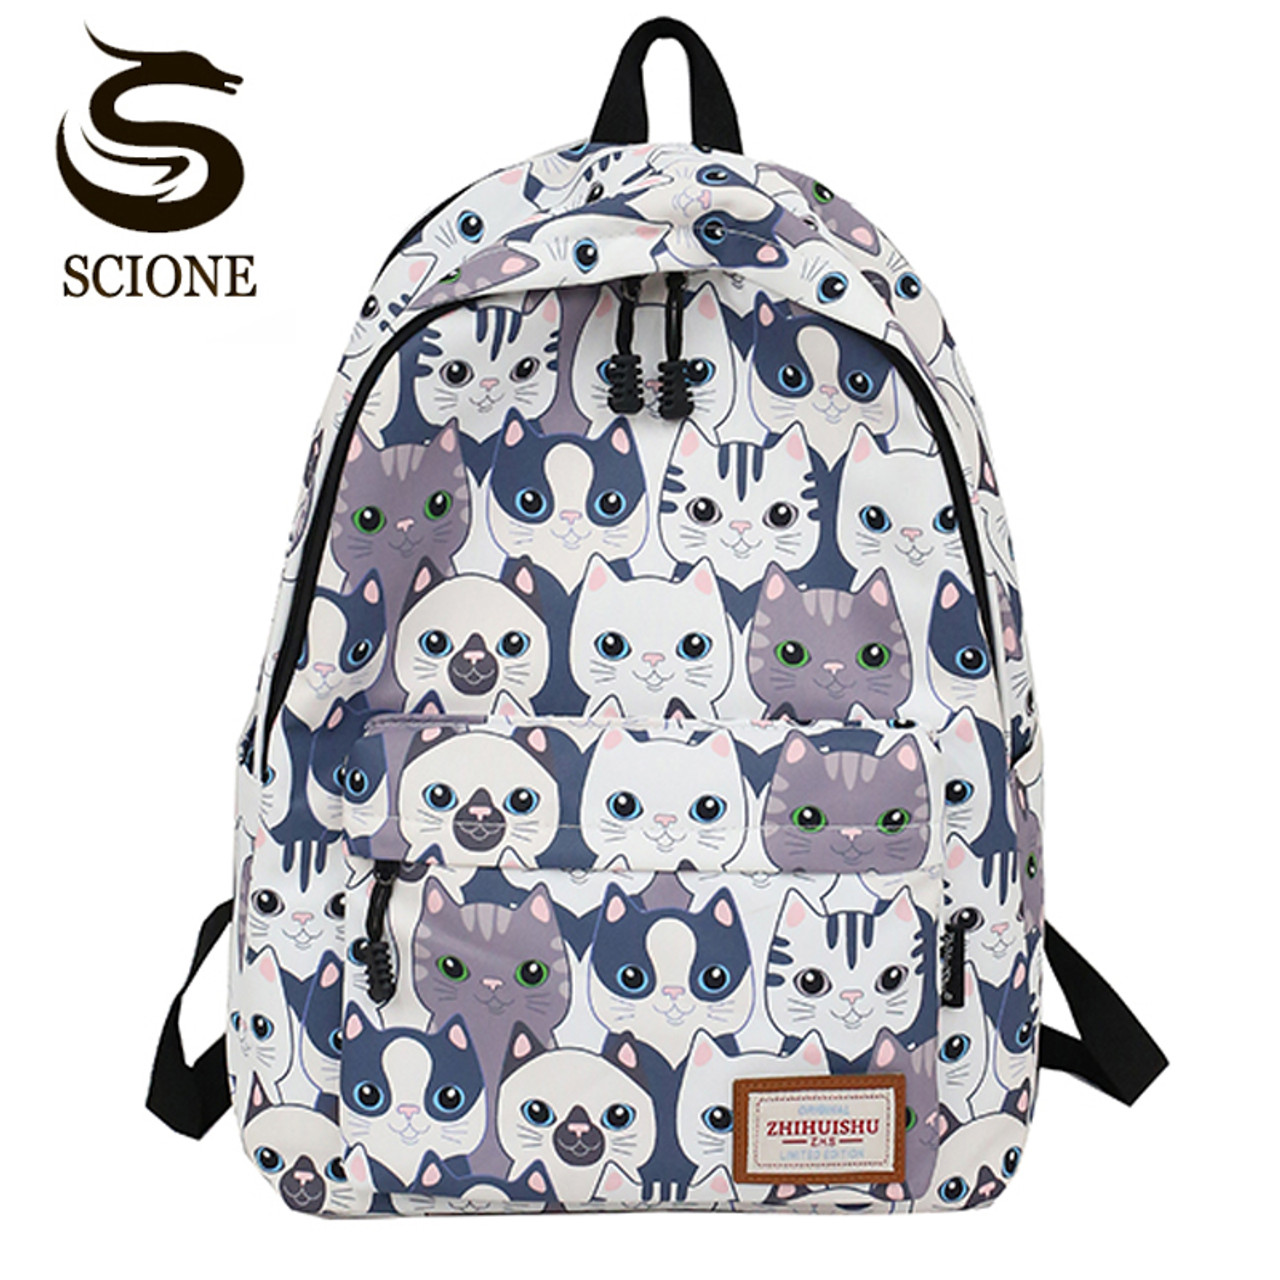 Fashion Animal Printing Backpack Women School Students Back Pack Female 14 15 6 Inch Laptop Cute Book Bag For Teenager Girls